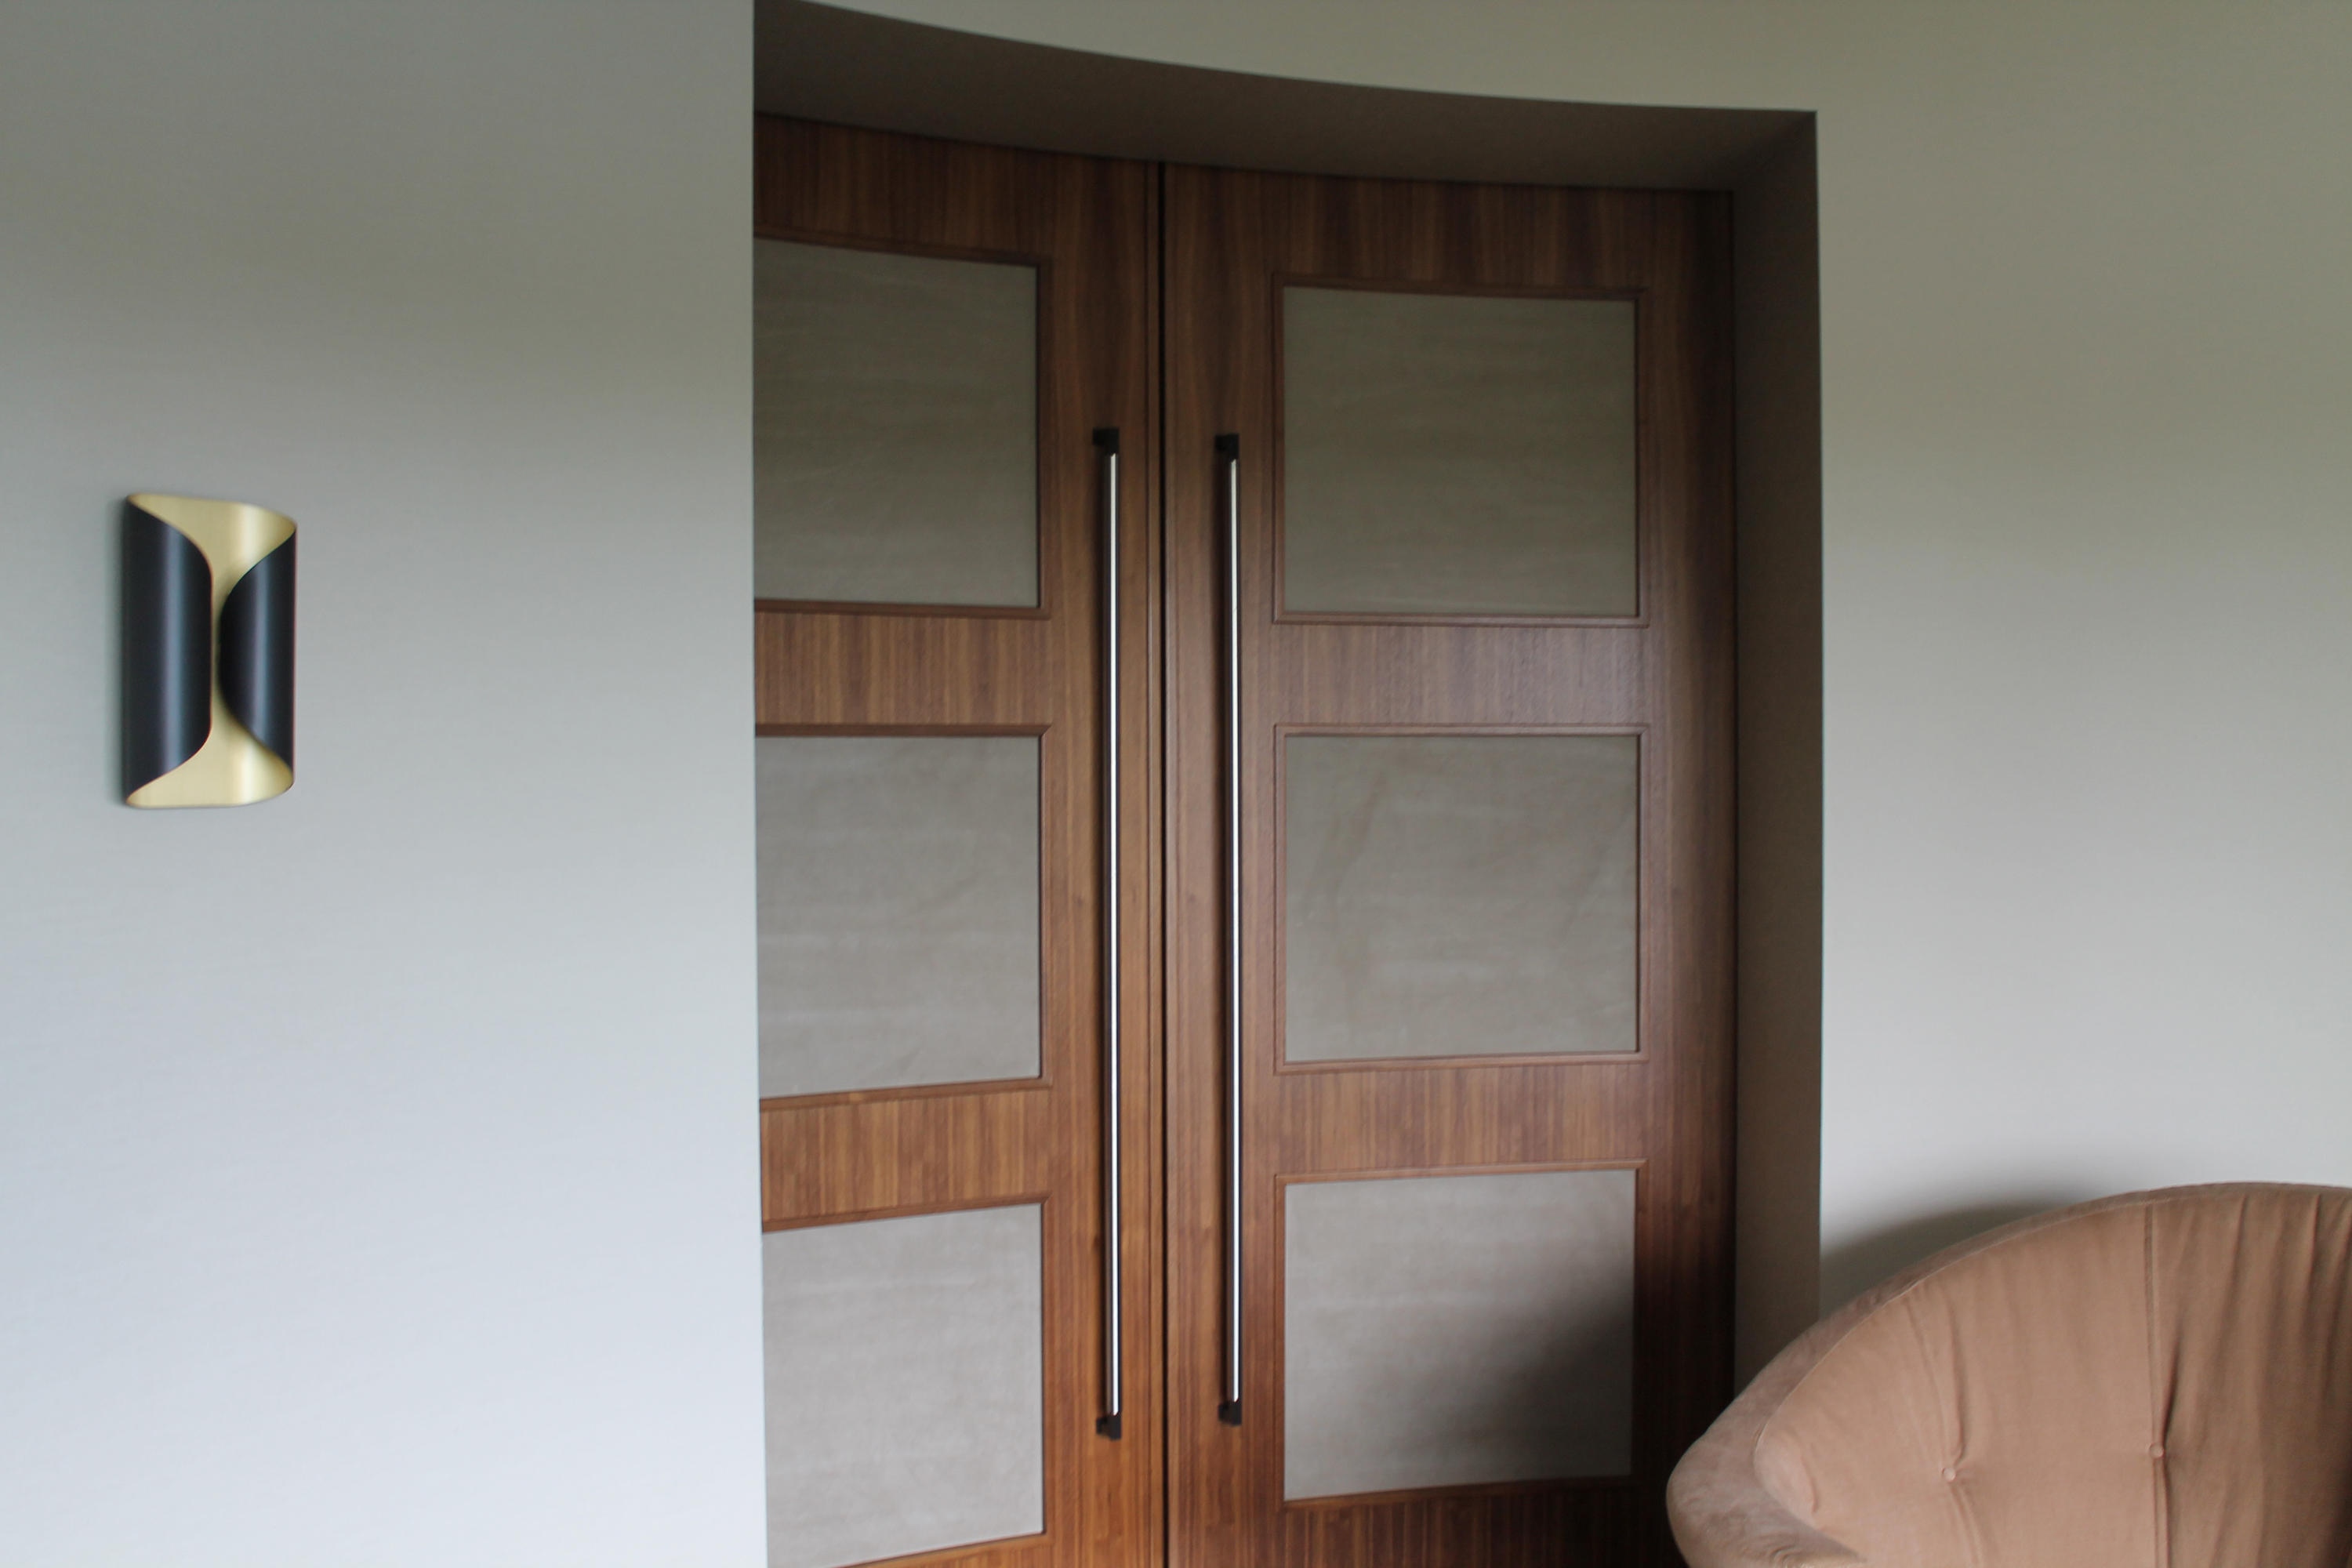 Merveilleux Specialty Doors   Curved Wood Doors By Bartels Doors U0026 Hardware | Internal  Doors